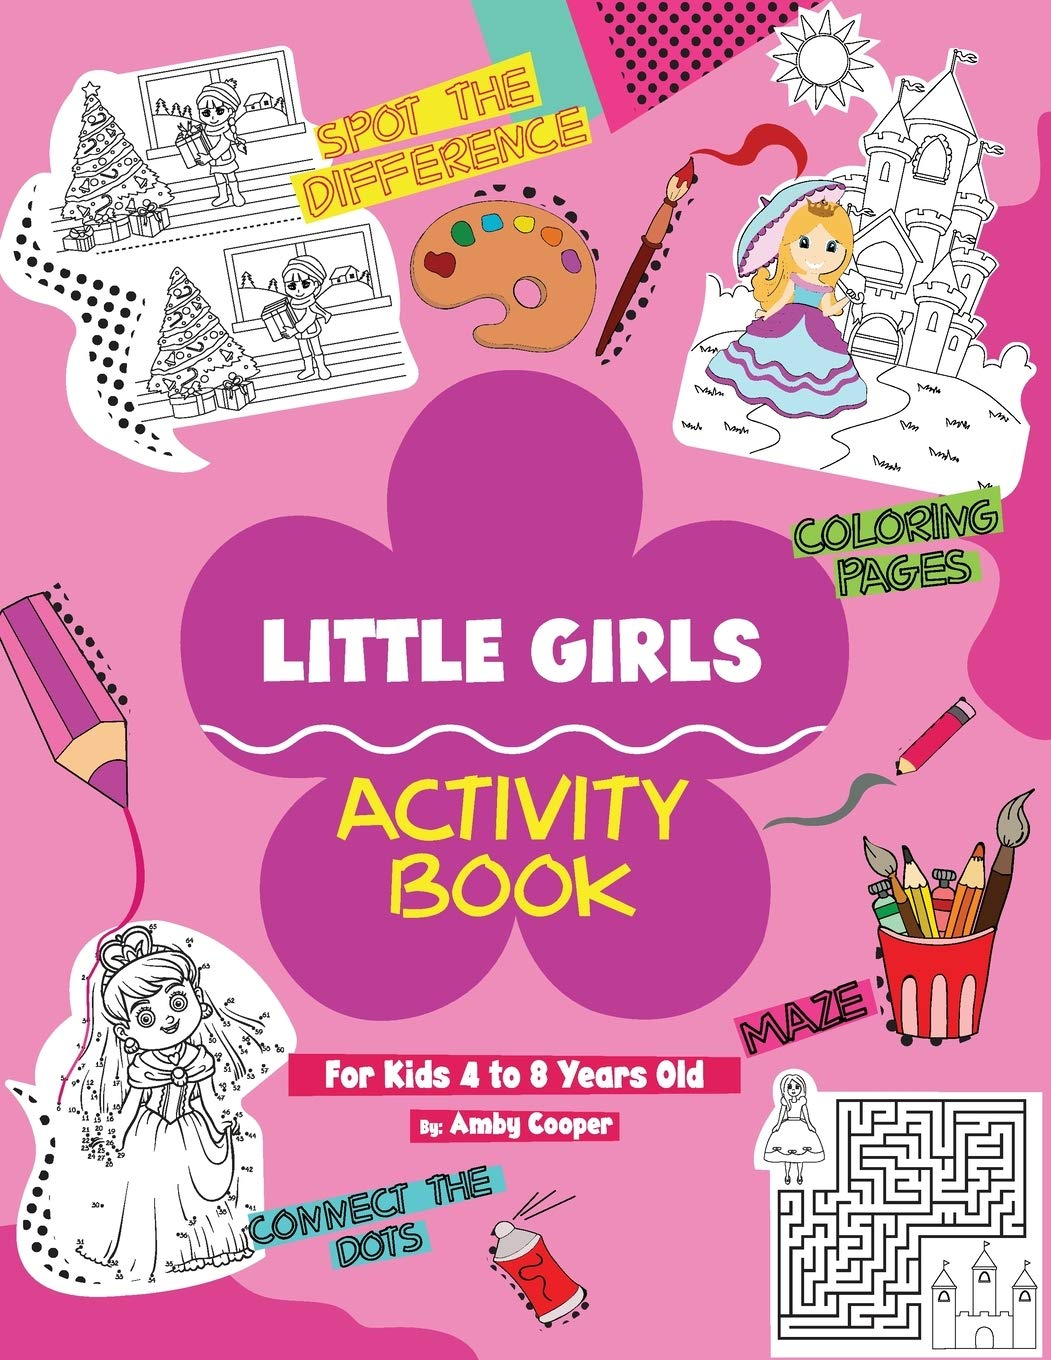 Little Girls Activity Book For Kids 4 To 8 Years Old Fun And Learning Activities For Preschool And School Age Children Coloring Maze Puzzles Connect The Dots Spot The Difference Cooper Amby